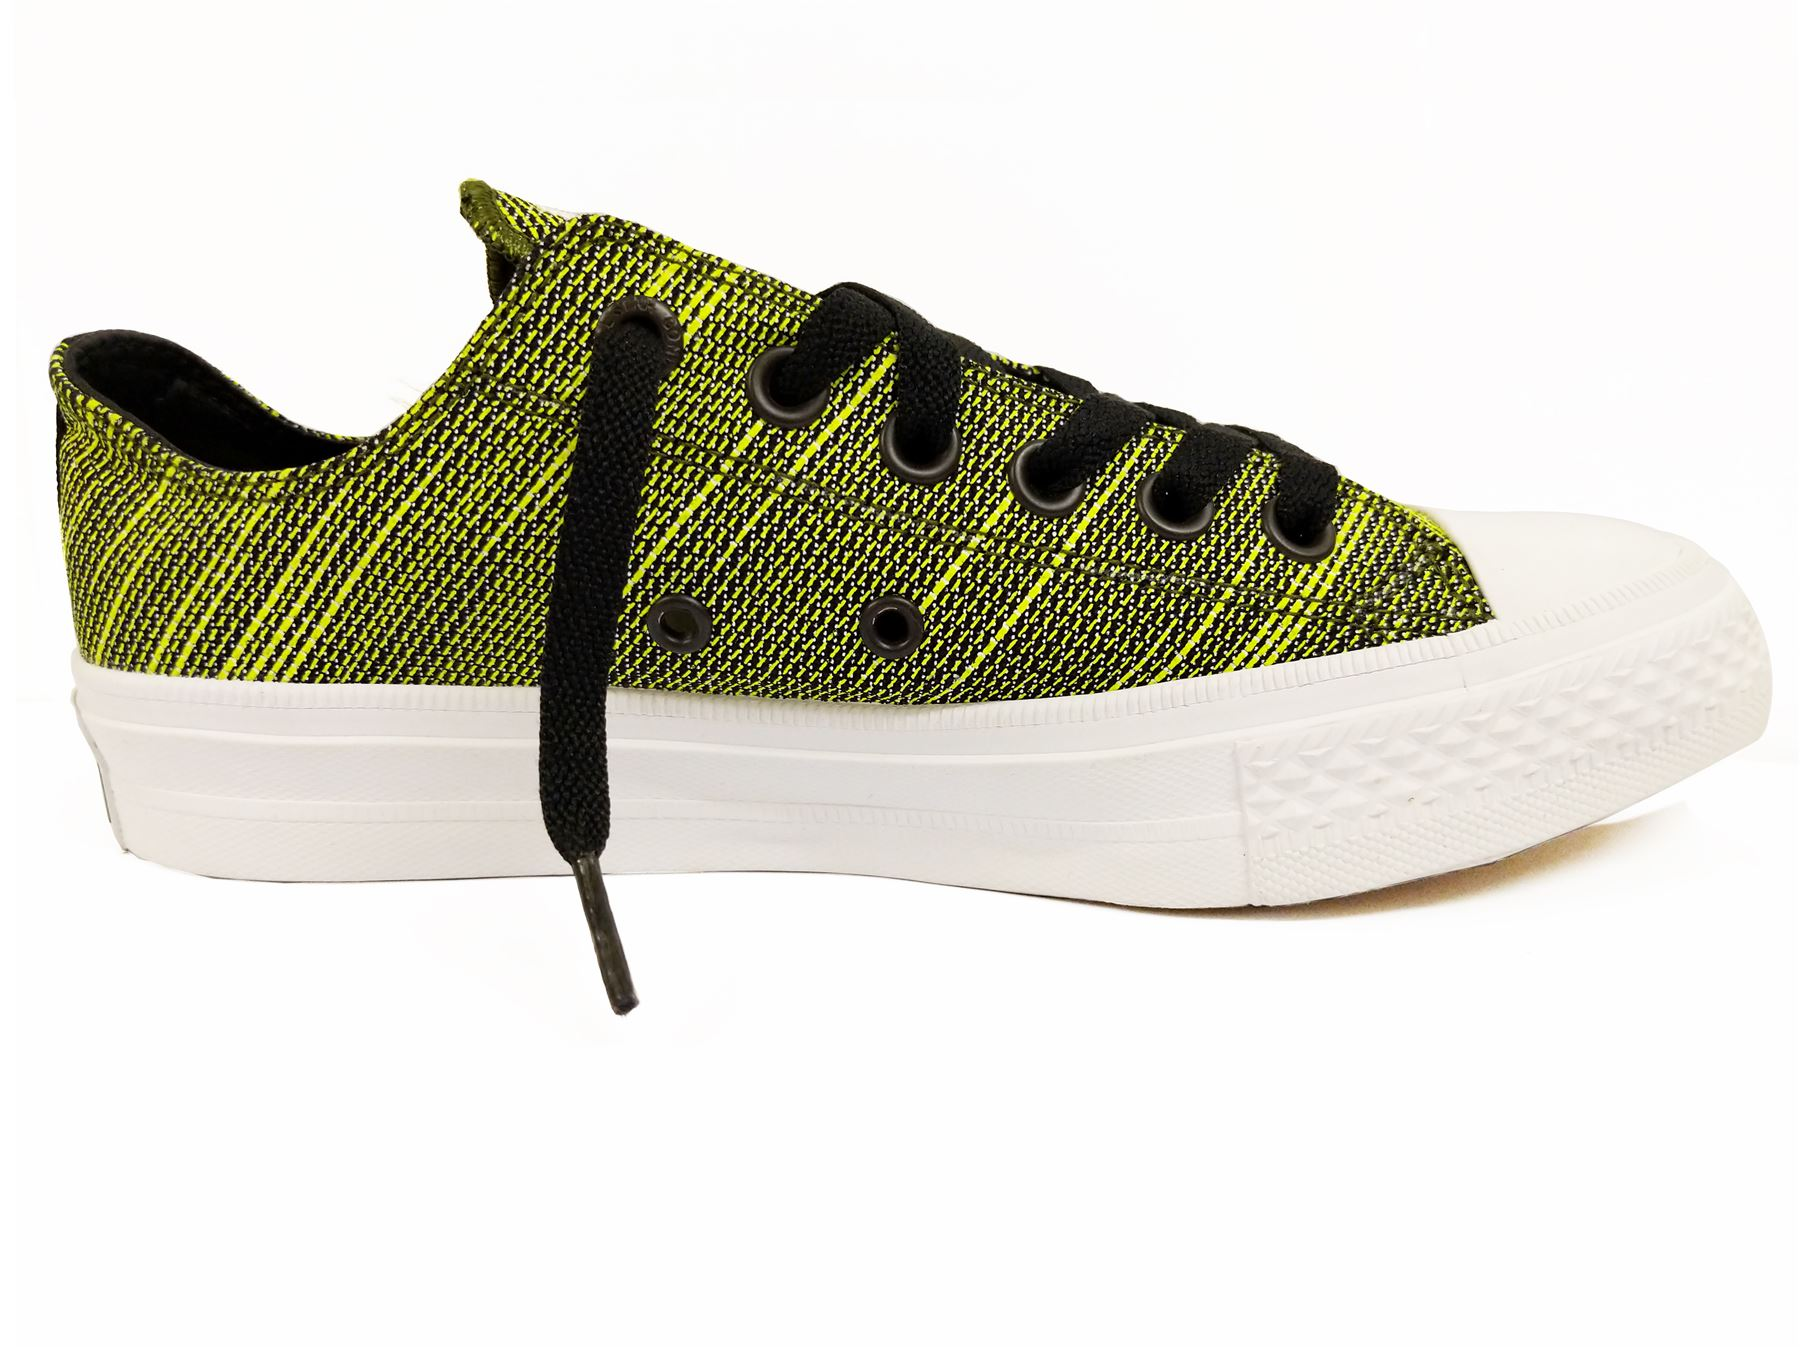 3193d8f0146 Converse Chuck Taylor All Star II Hi Lo Tops Mens Womens Unisex Canvas  Trainers  Picture 2 of 5 ...